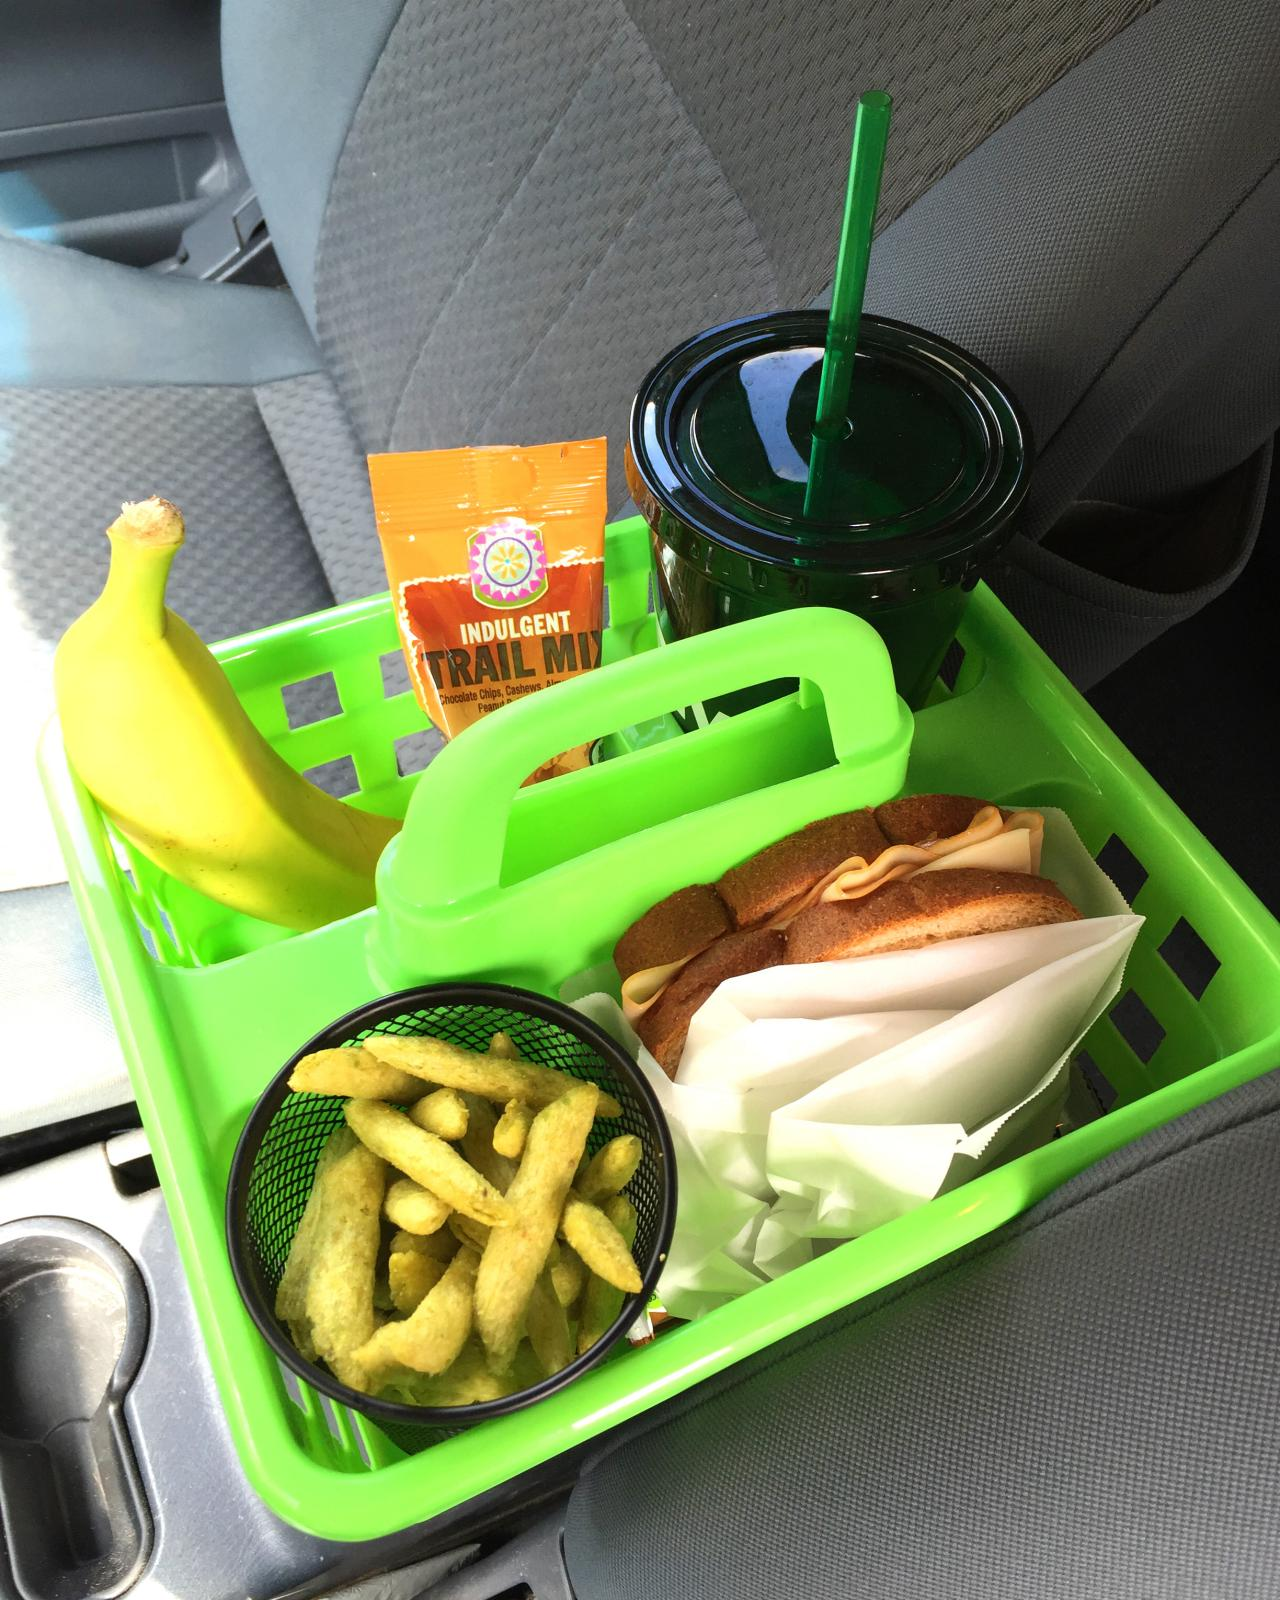 food items in tray